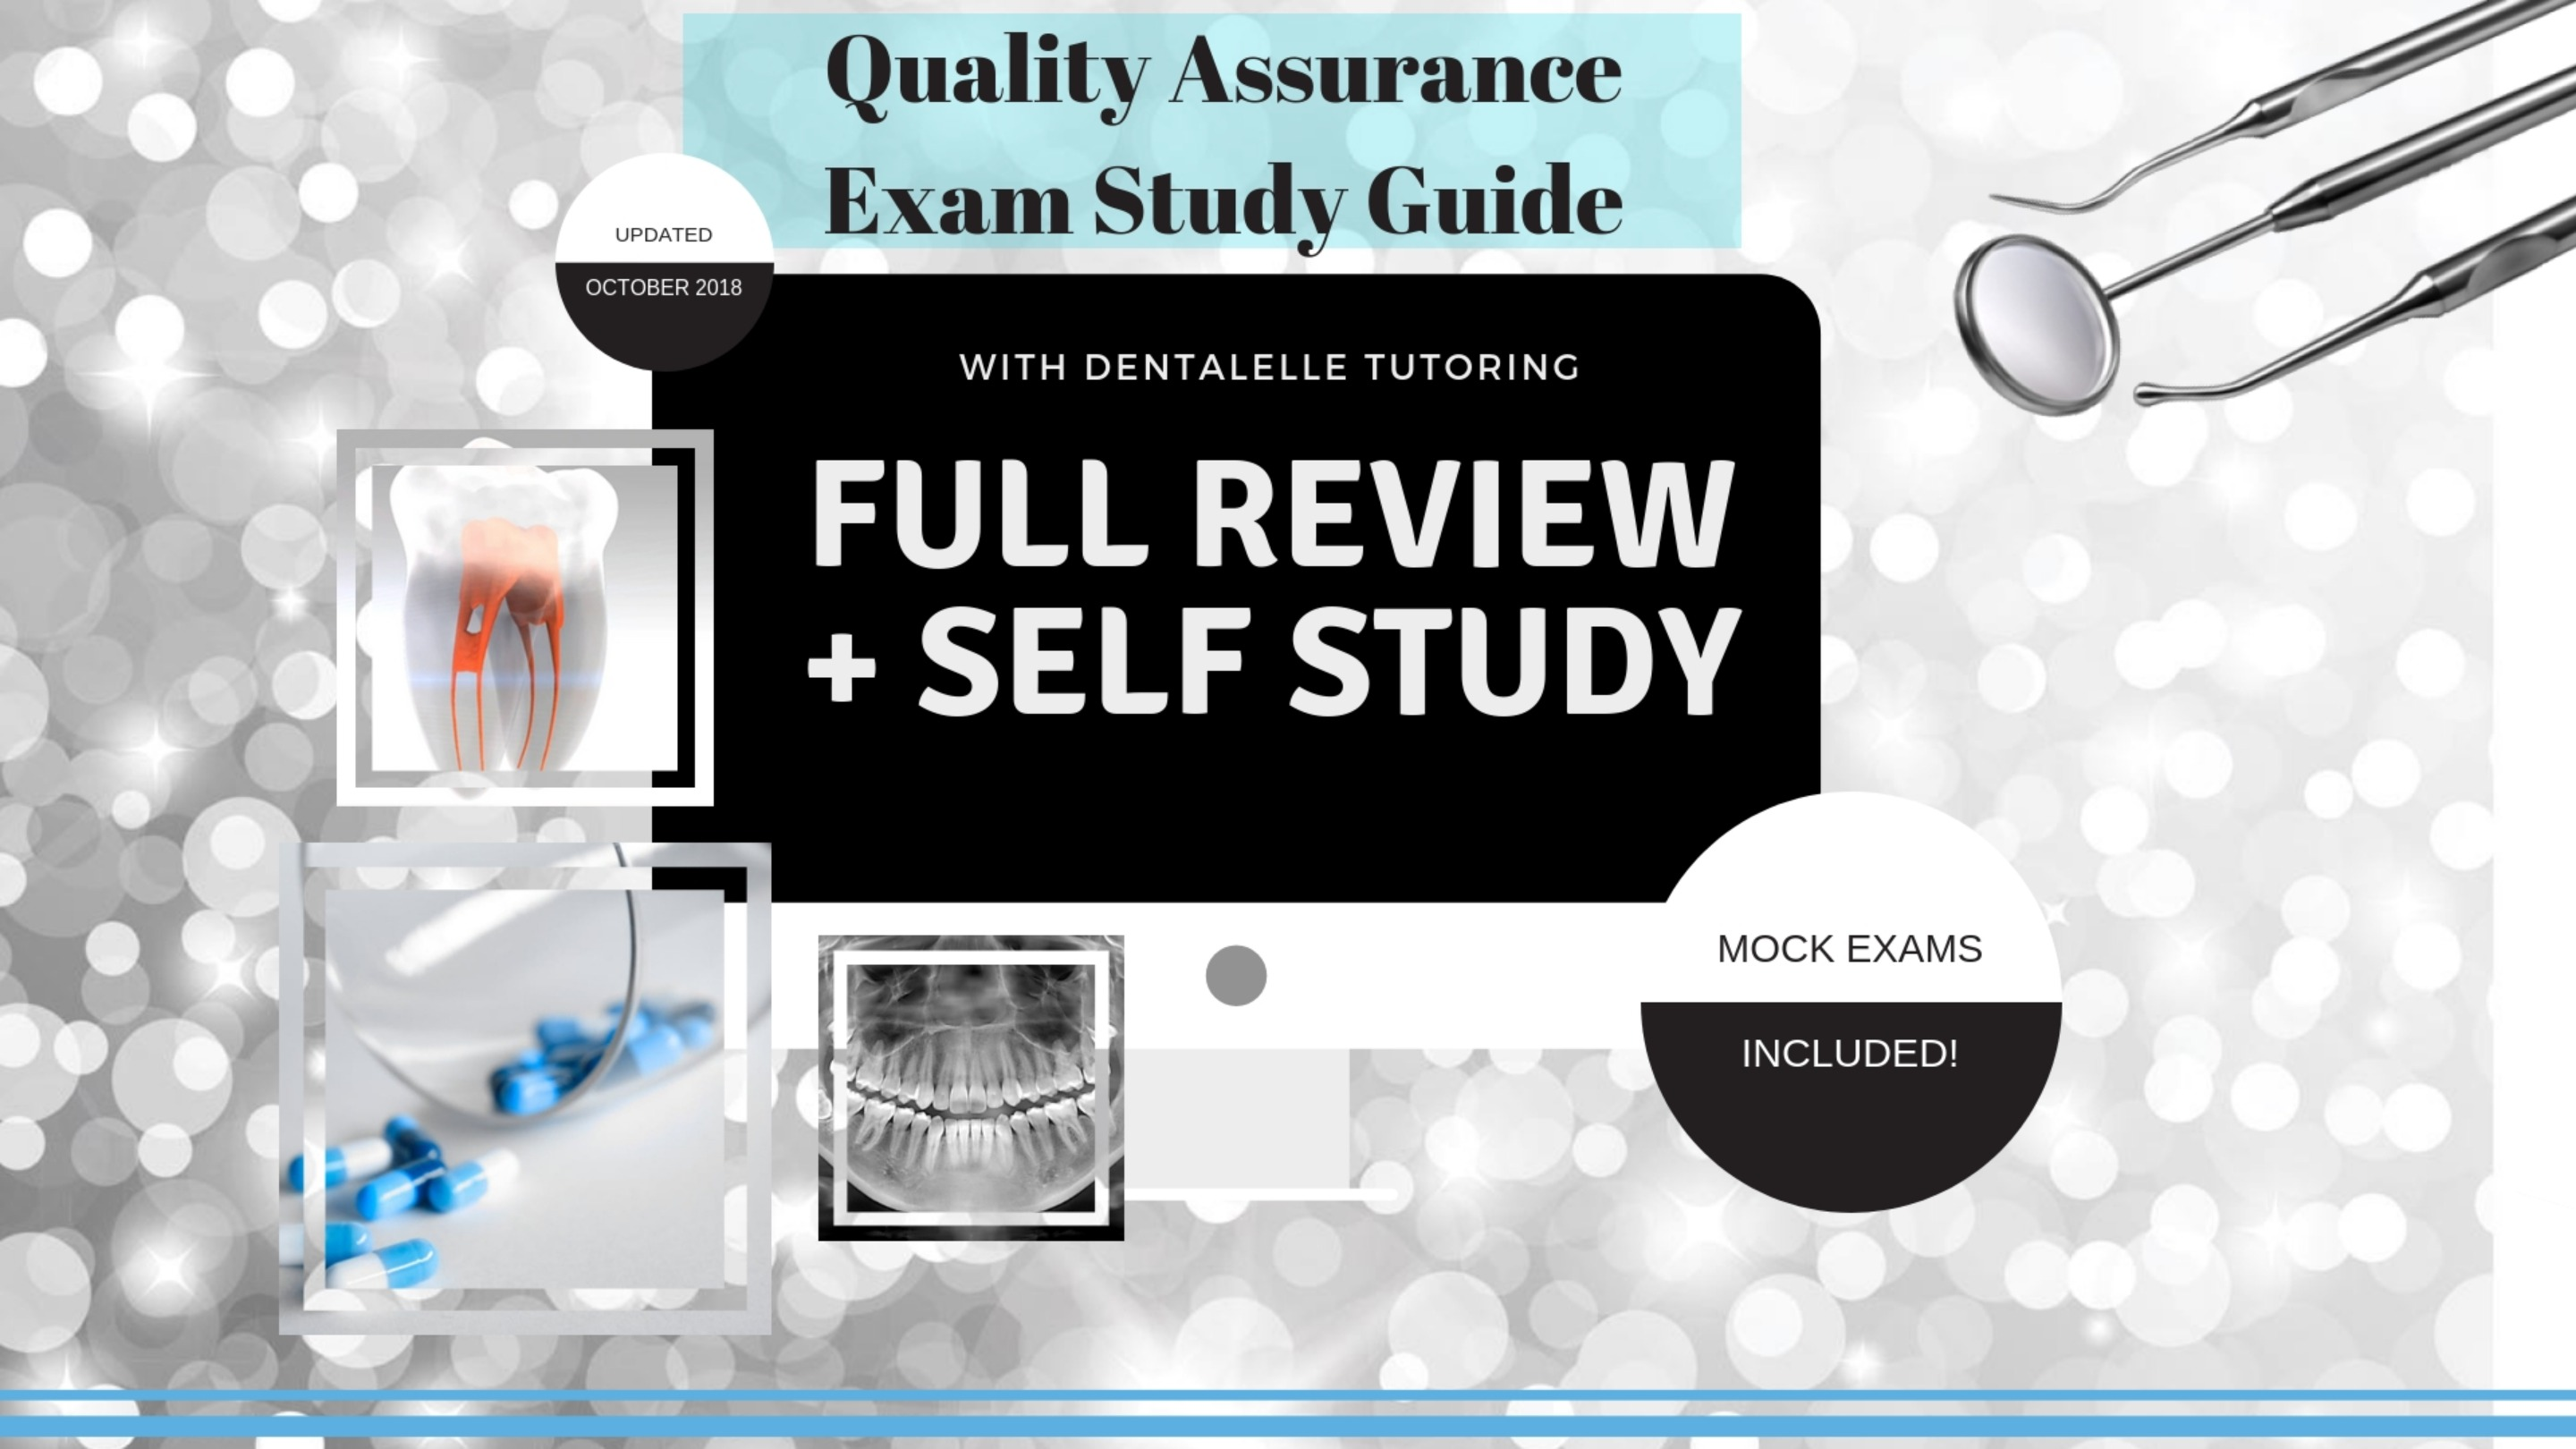 Dentalelle Quality Assurance Study Guide